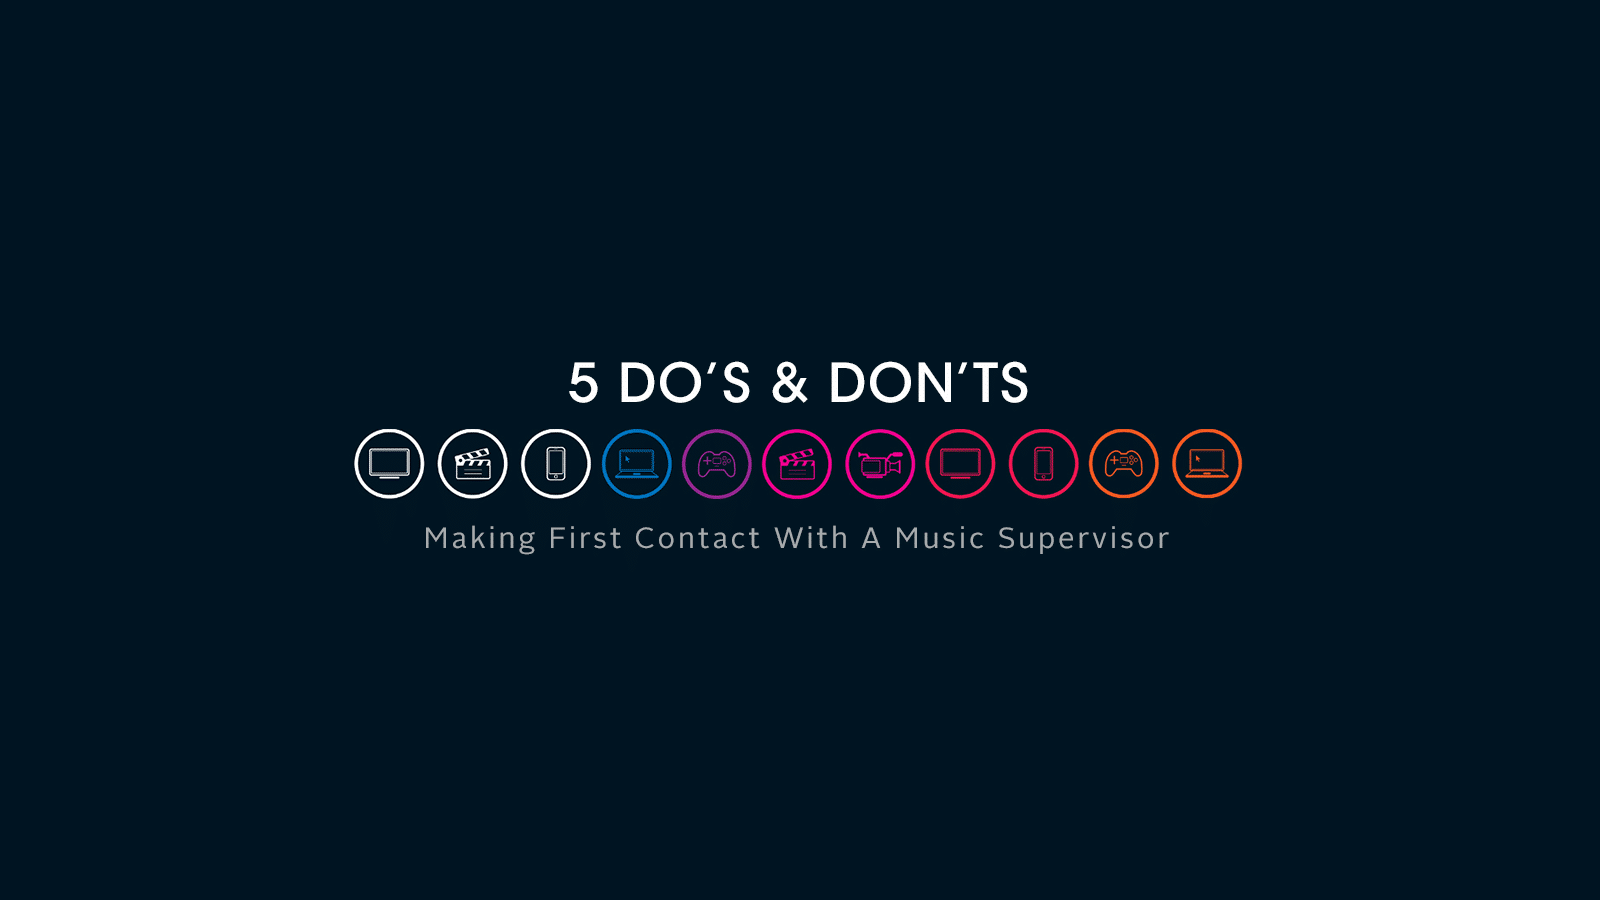 5 Dos & Don'ts: Making First Contact With A Music Supervisor